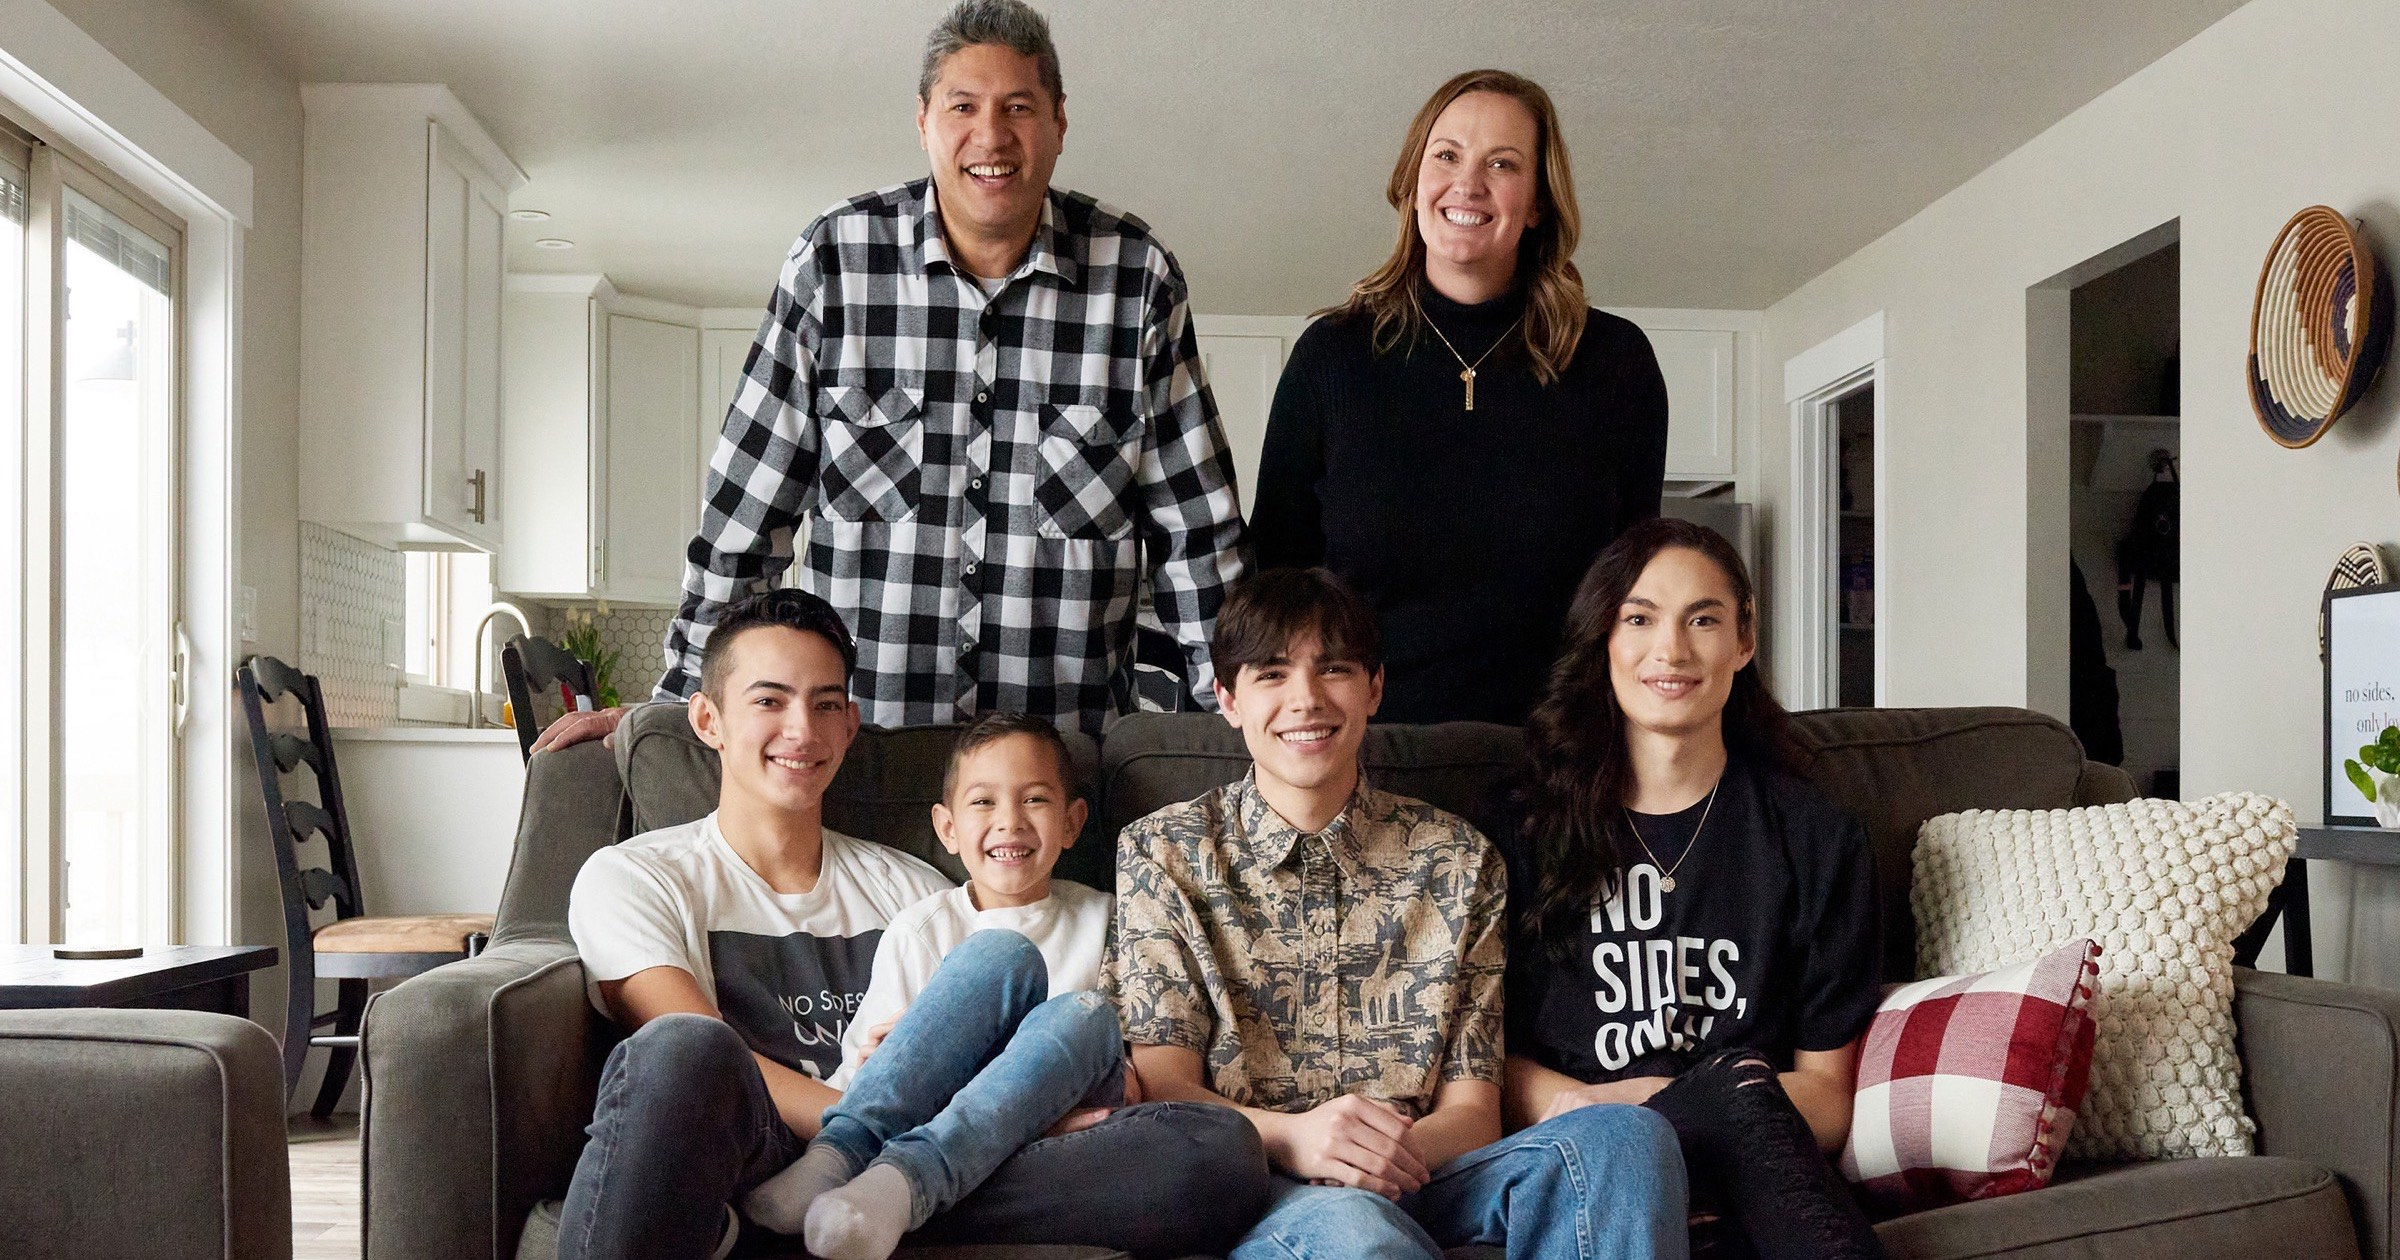 Encircle, a local nonprofit that serves young LGBTQ+ people and their families